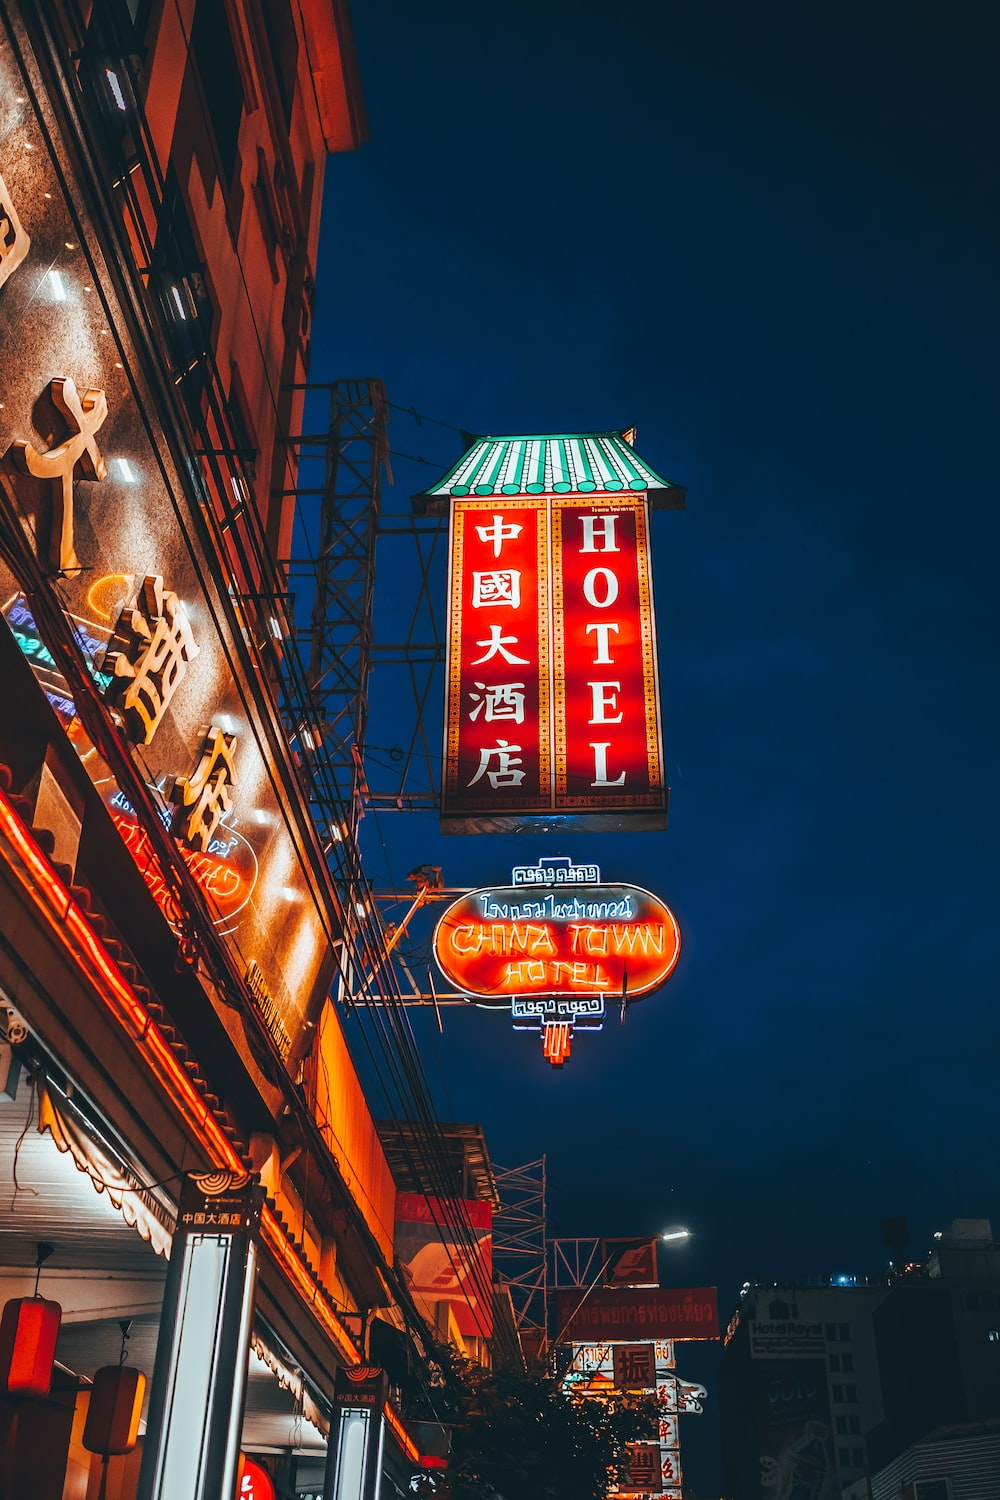 China Town Hotel signage